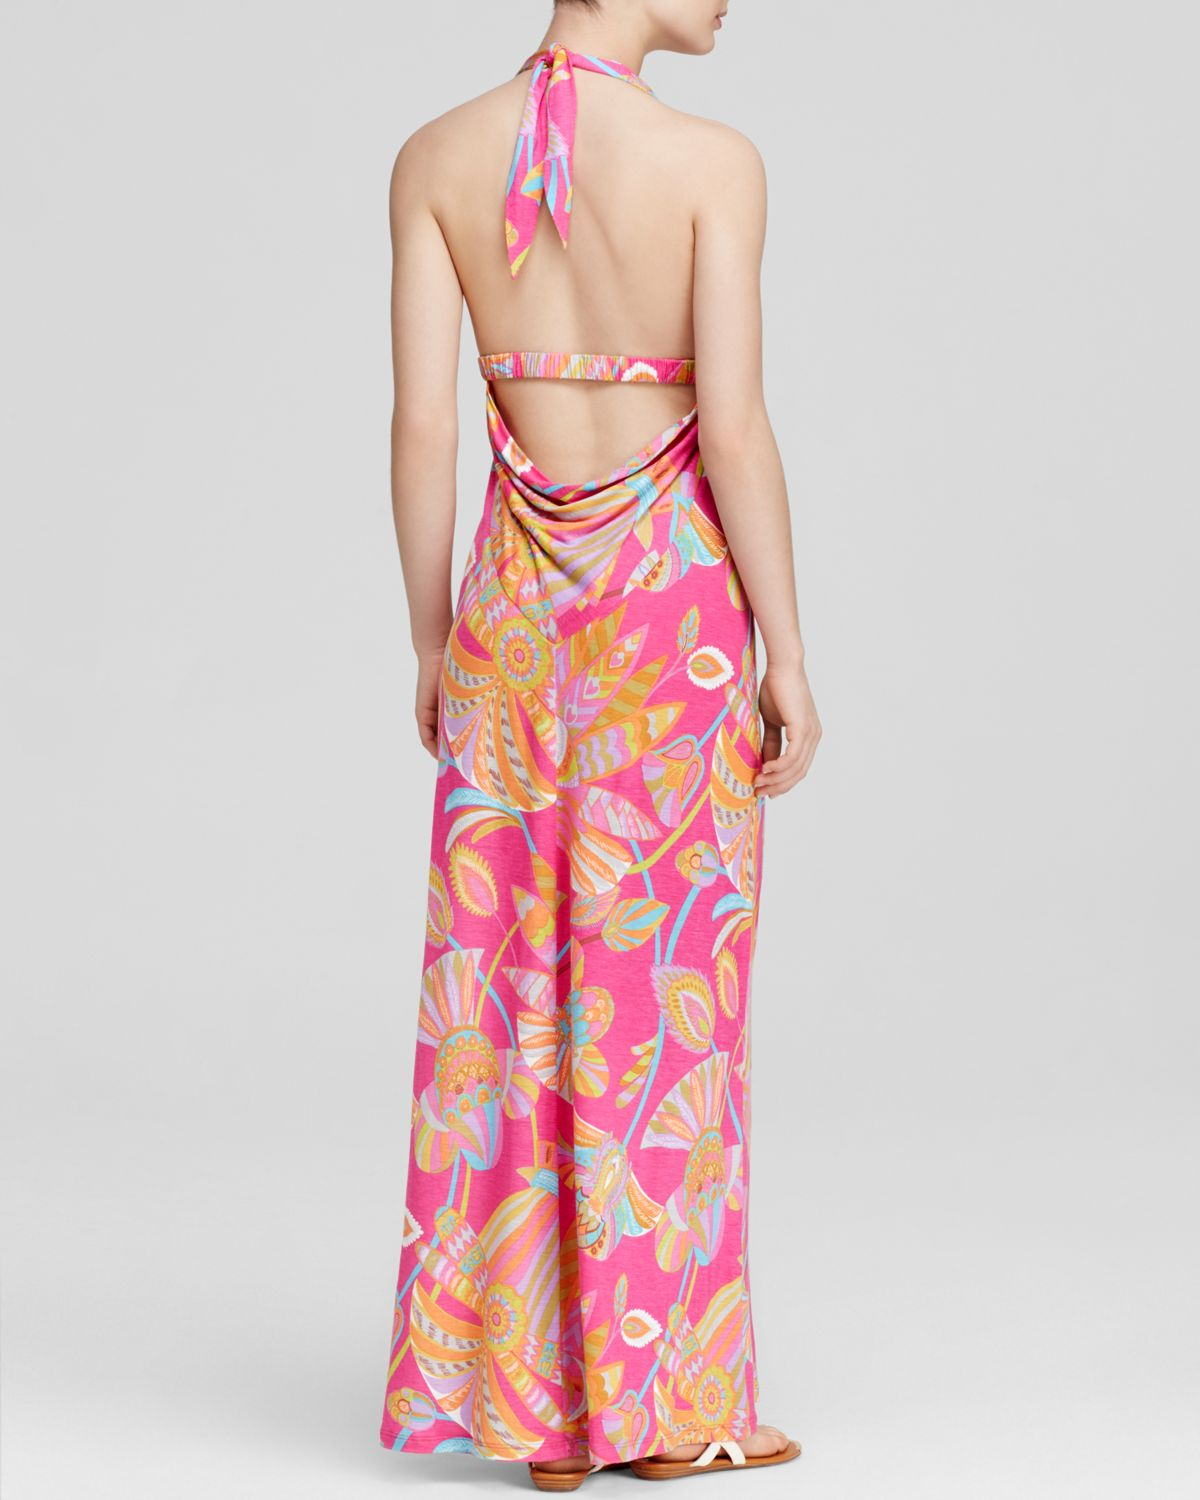 4615b0c9ad Trina Turk Maxi Dress - Biscayne Egyptian Floral in Pink - Lyst